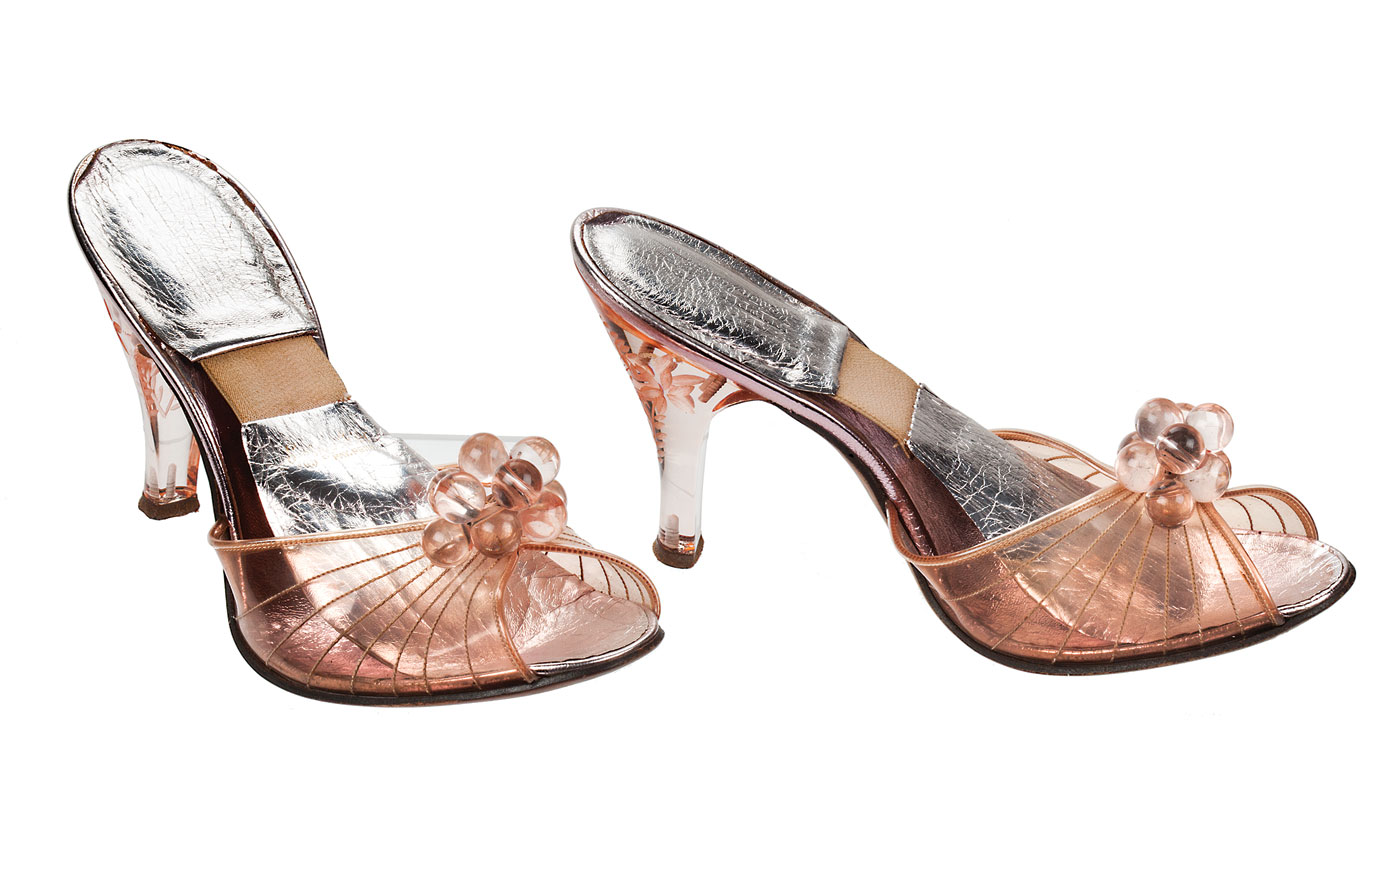 """Walk This Way:  PEEP-TOE MULES of plastic, lucite, leather, elastic Spring-o-lator, by Fenton Last, Saks Fifth Avenue, retailer, mid-1950s. These mules feature an innovation called the Spring-o-lator, a strip of elastic tape in the sole that helped the shoes adhere to the wearer's feet. The device was first popularized by Beth Levine (1914–2006), known as the """"First Lady of Shoe Design."""""""